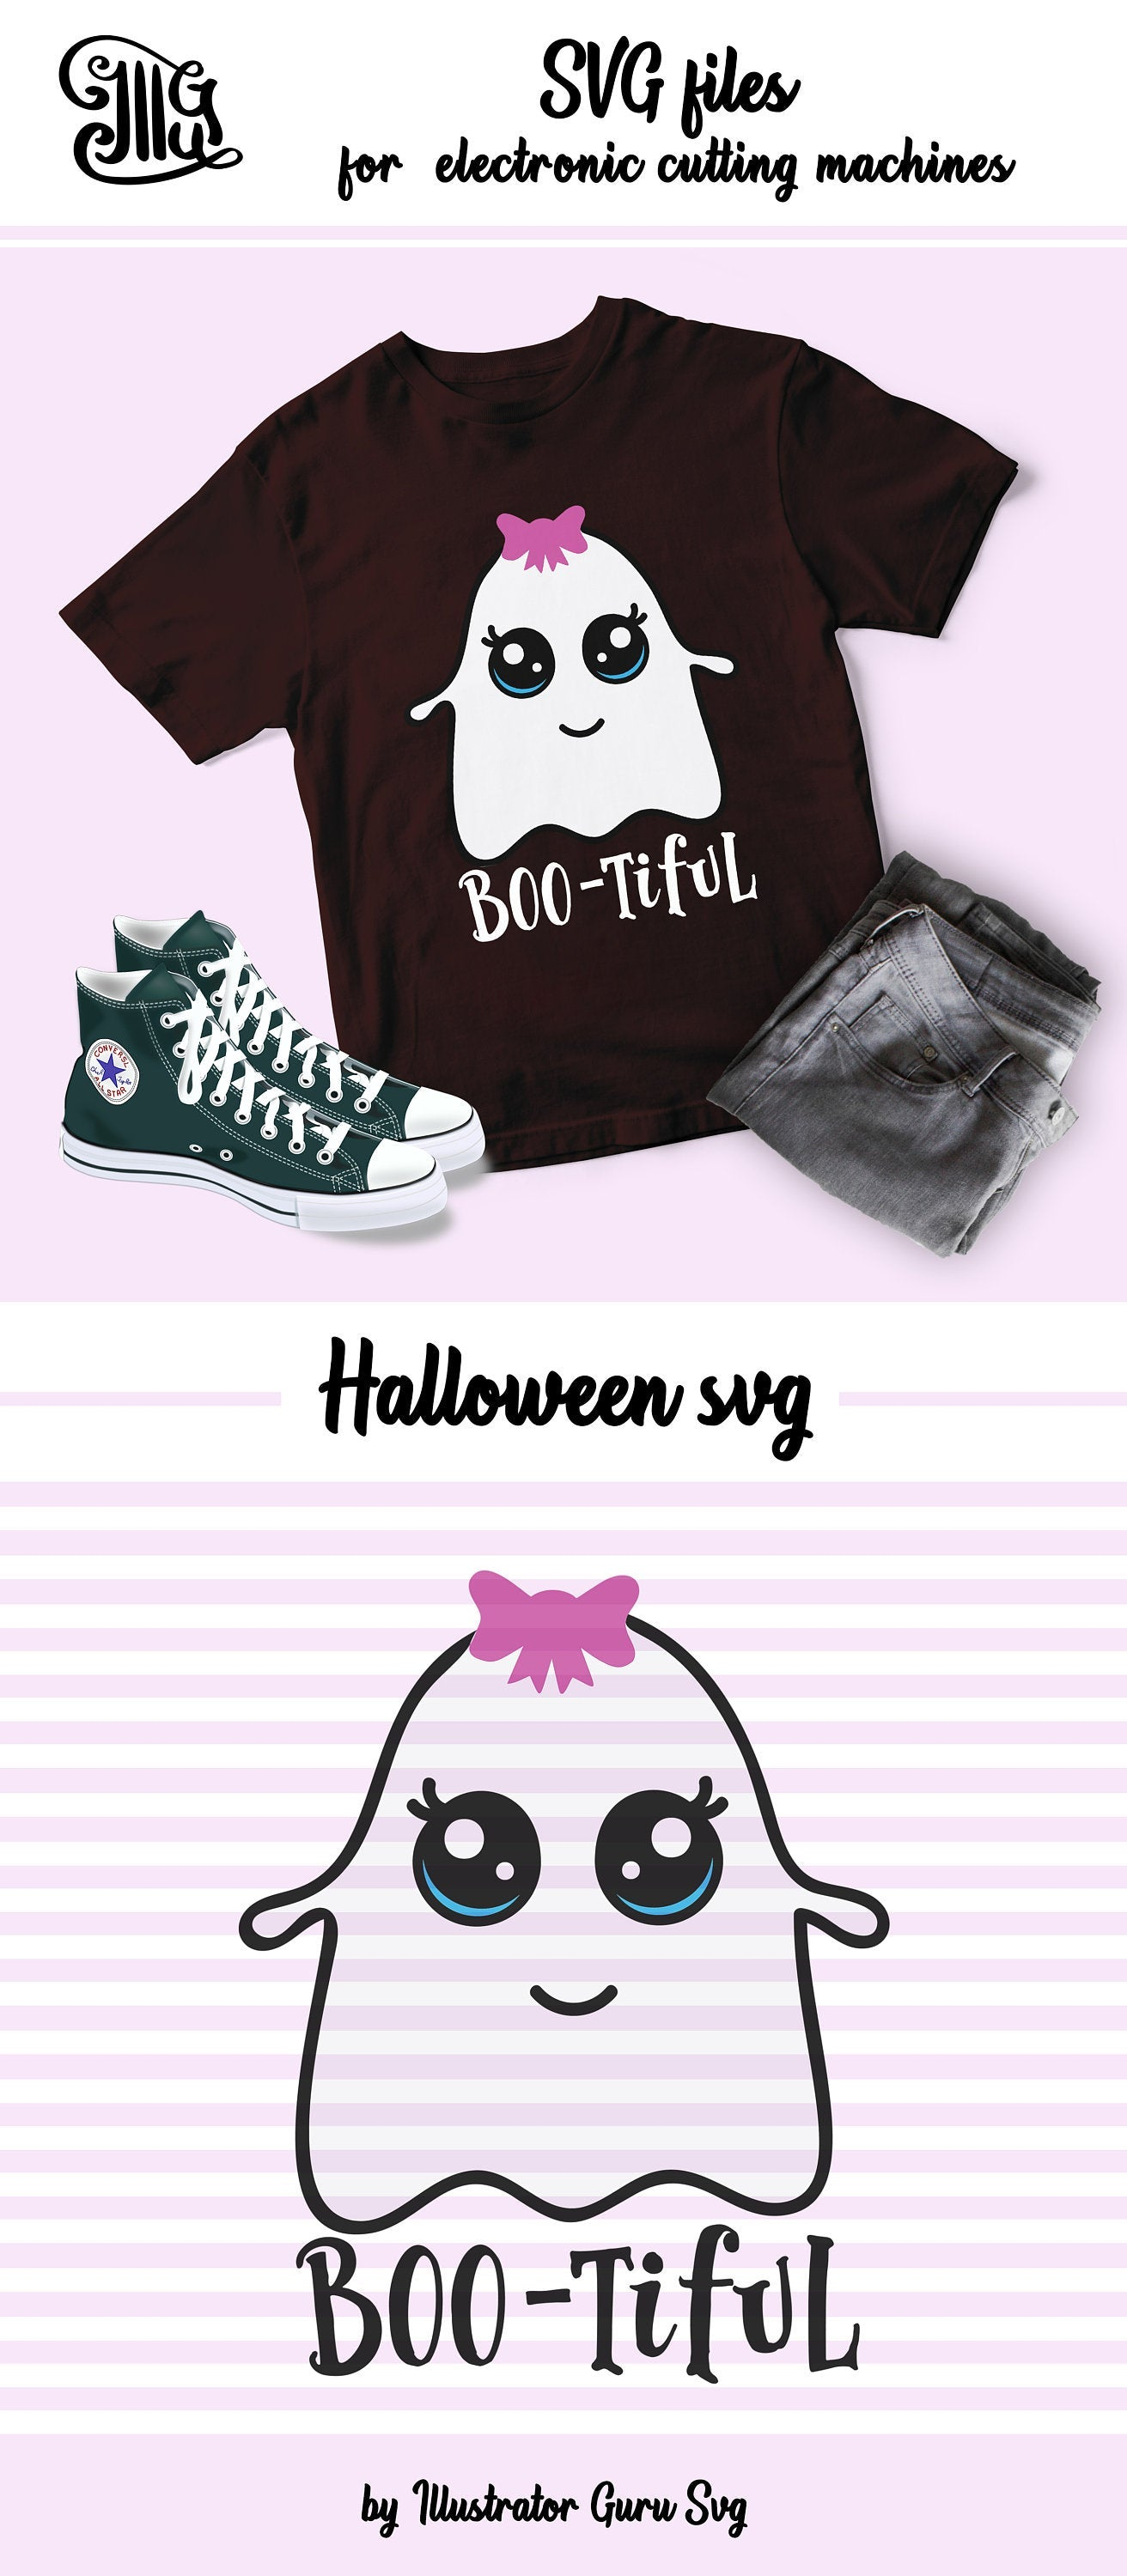 Funny Halloween svg, Boo-tiful svg, halloween girl svg, halloween ghoul svg, halloween bow svg, halloween girl sayings, halloween girl cut-by Illustrator Guru